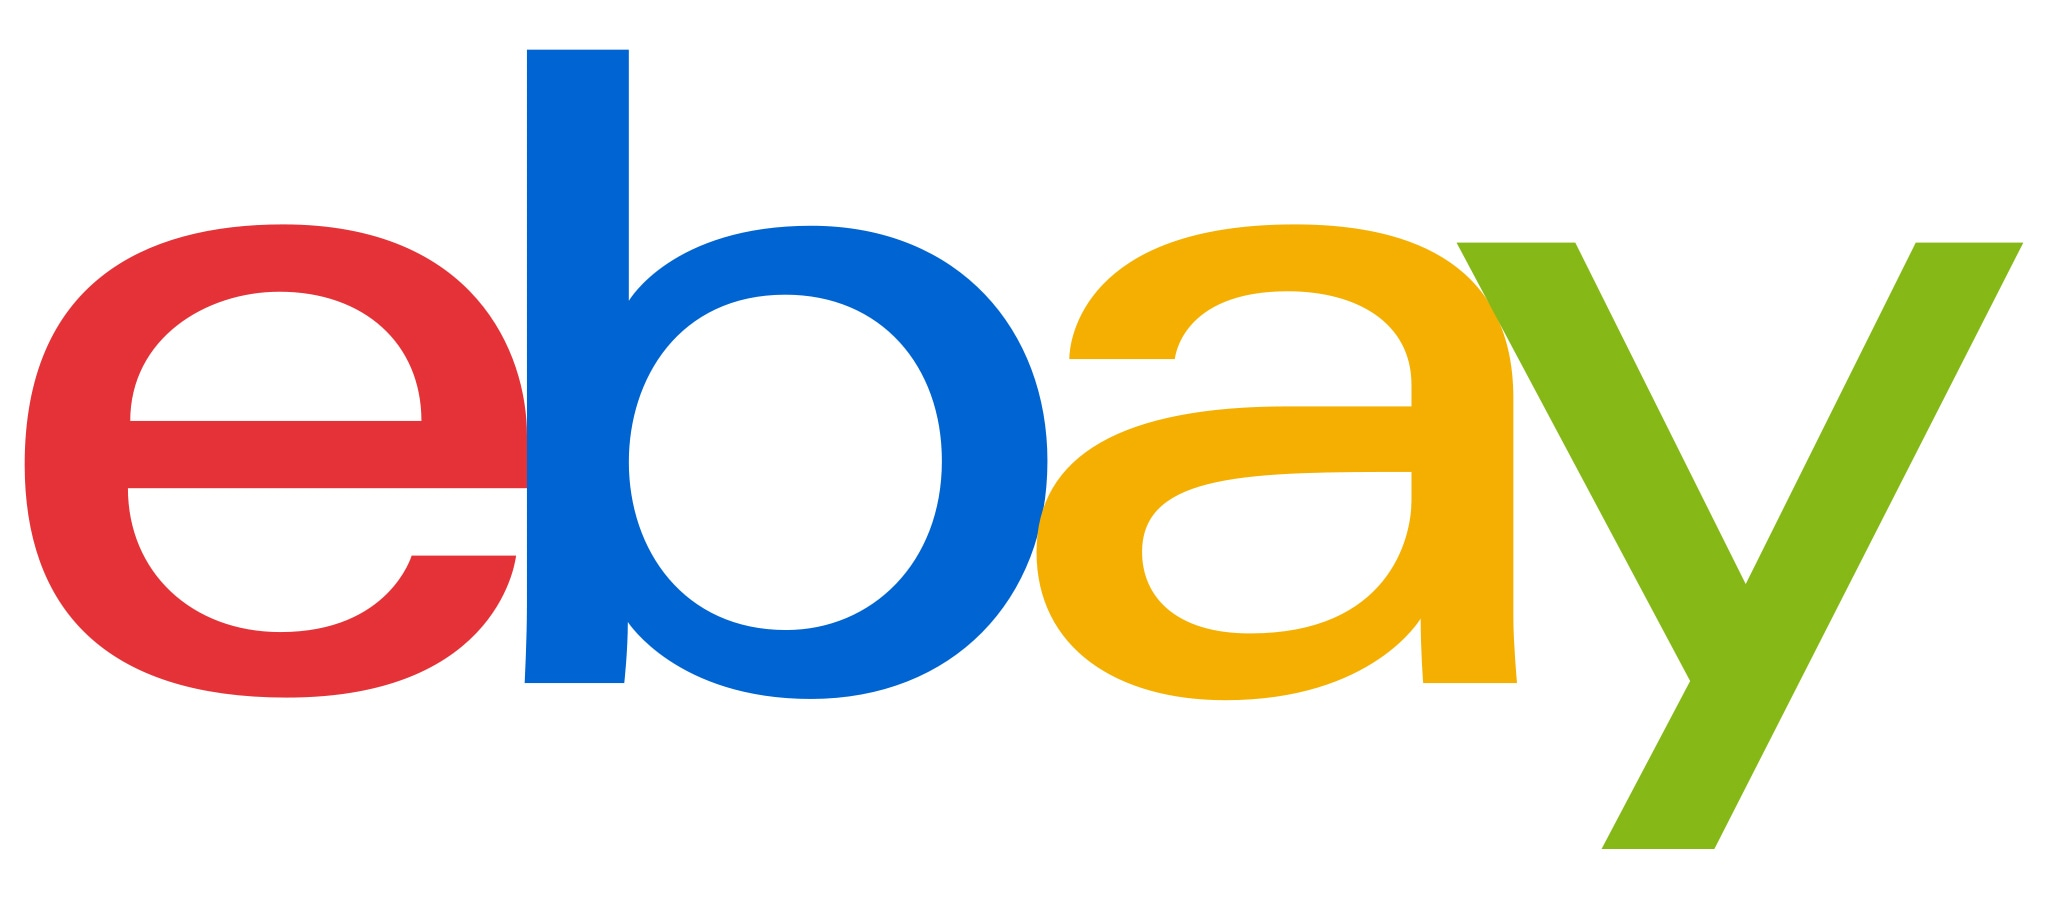 eBay promo codes